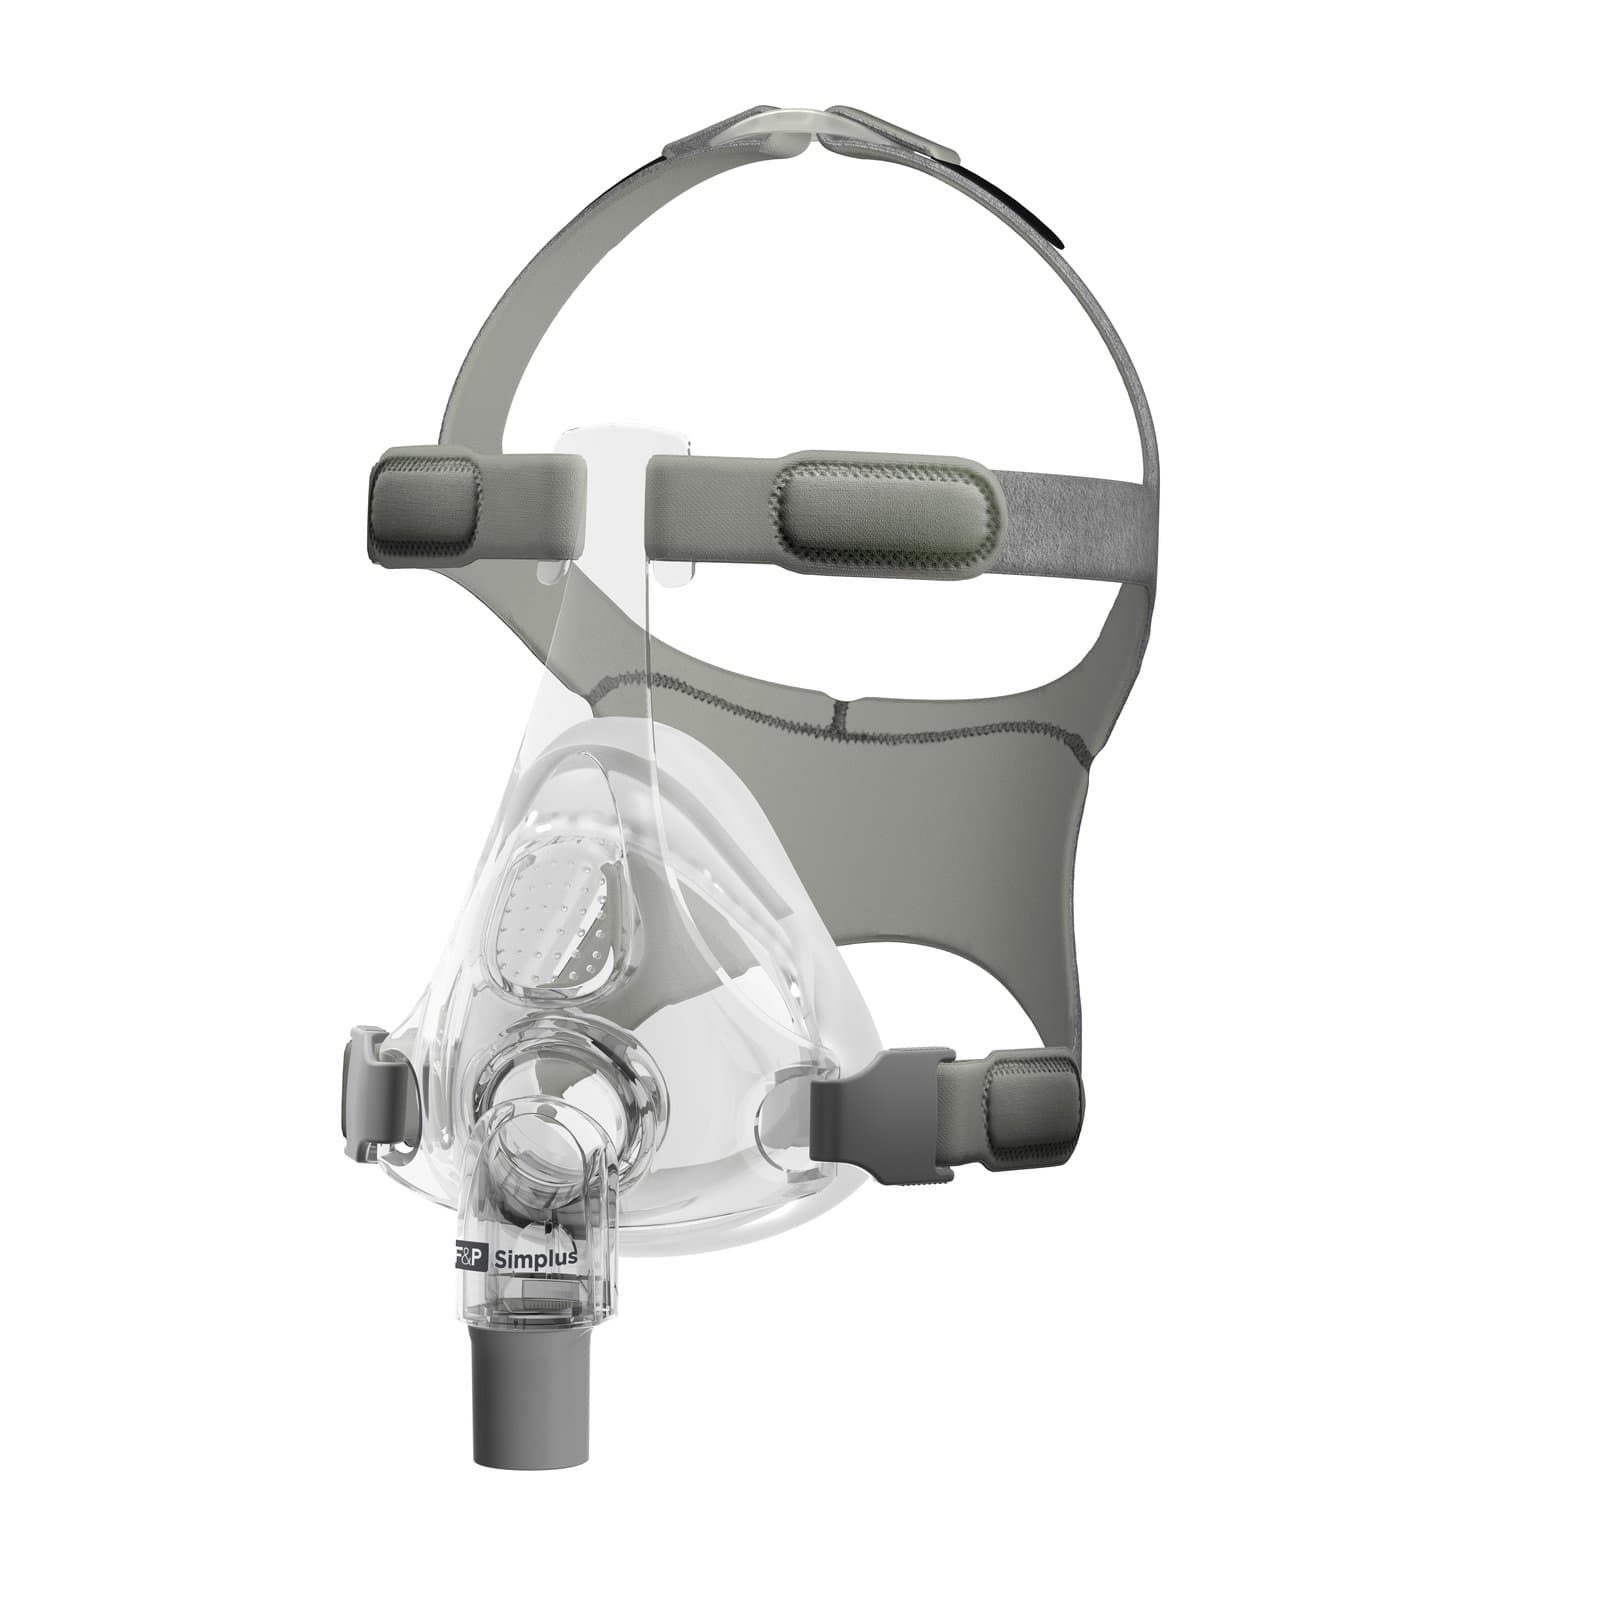 Fisher & Paykel - Simplus full face CPAP - Small, medium or large